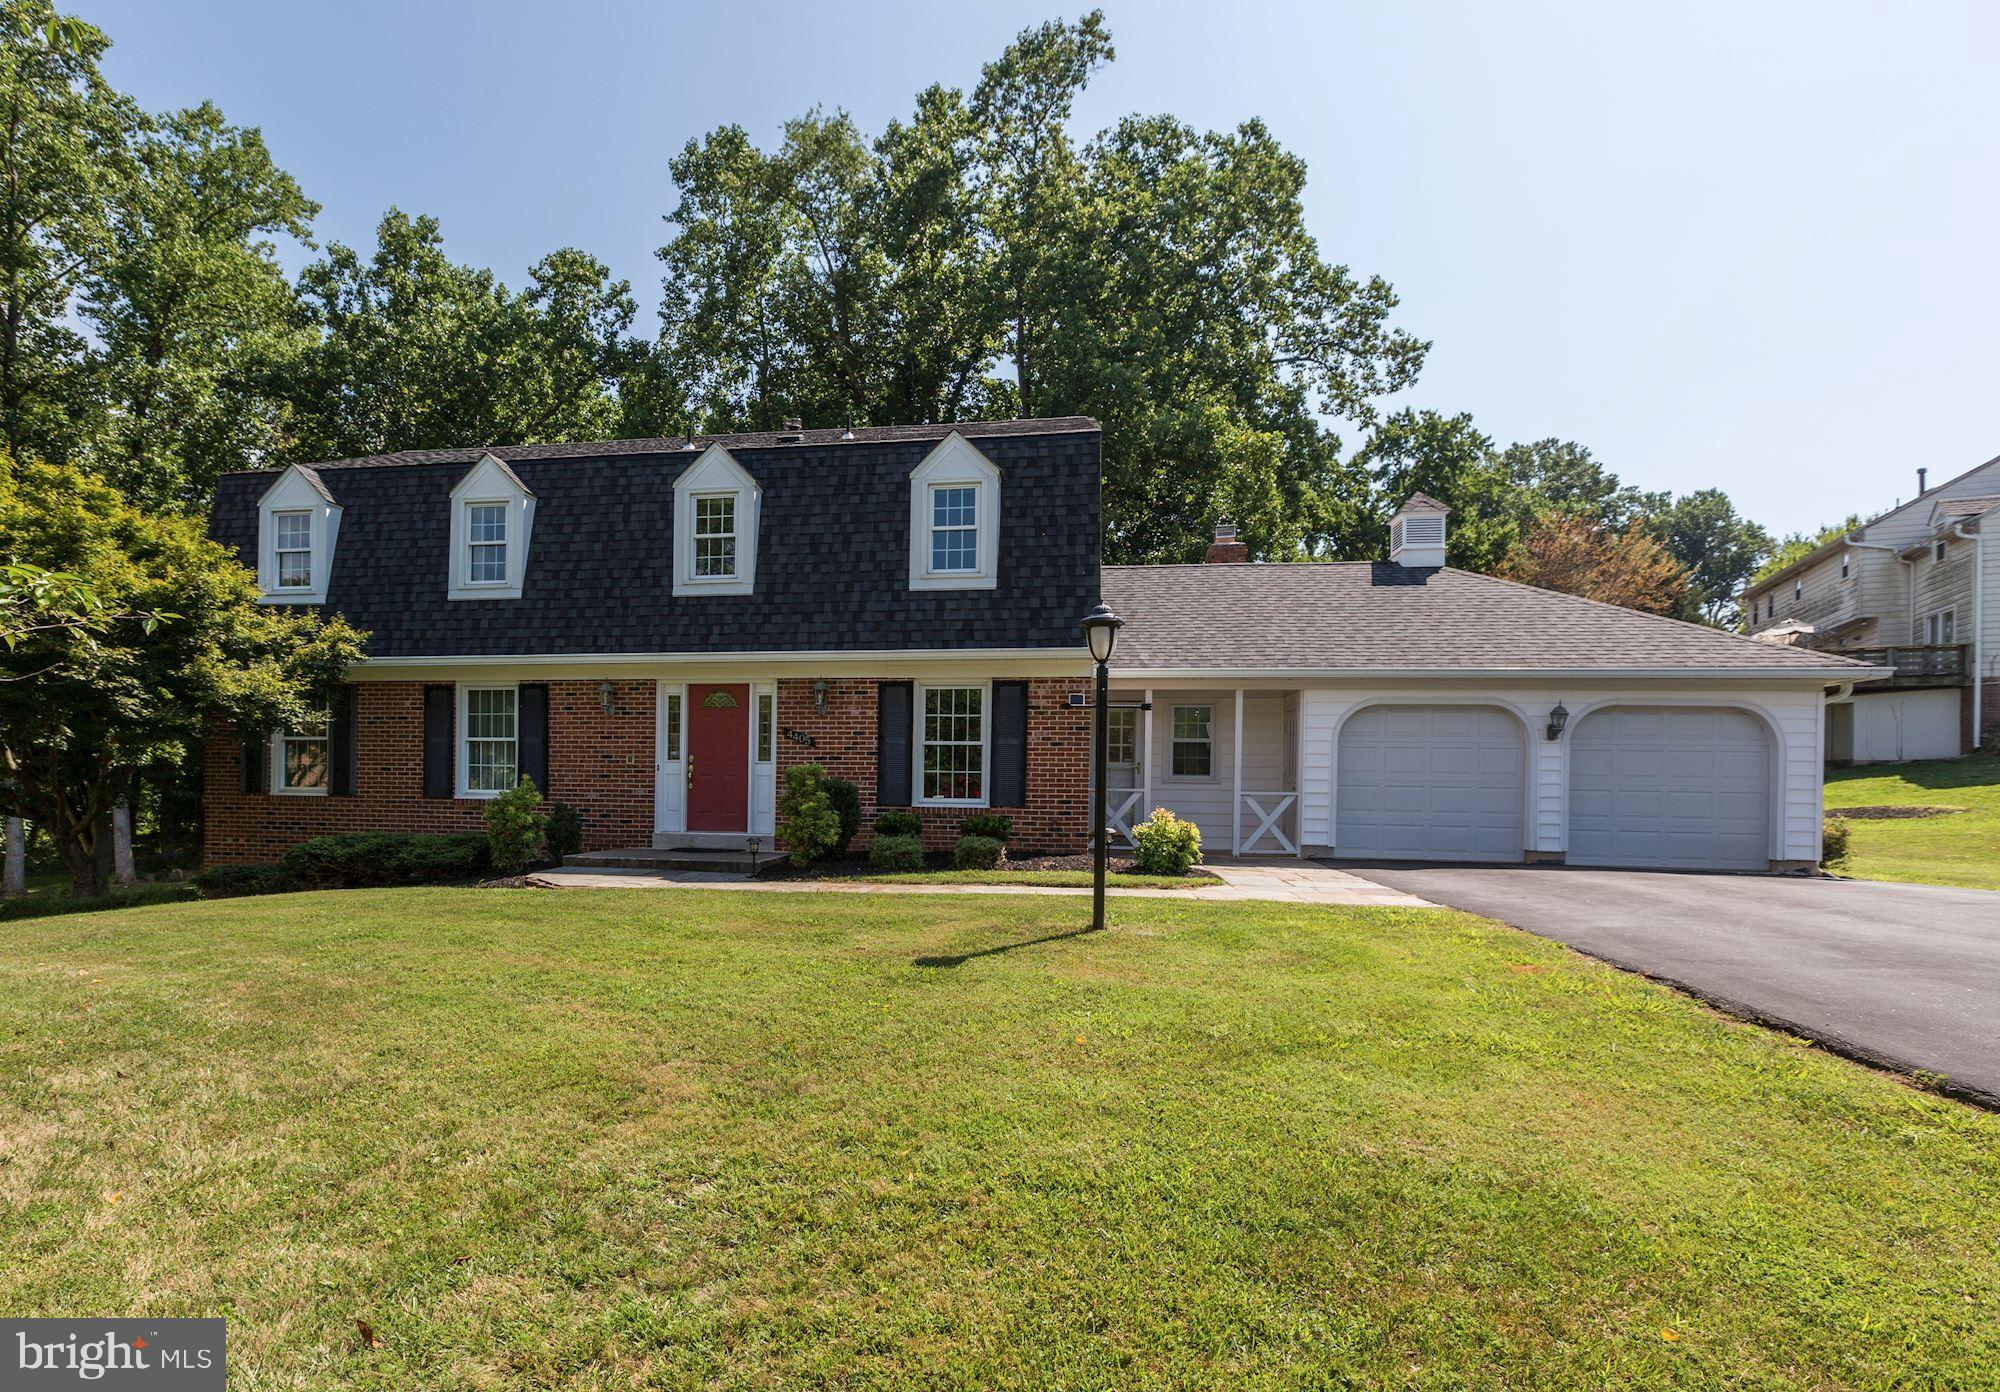 4405 BUCKTHORN COURT, ROCKVILLE, MD 20853